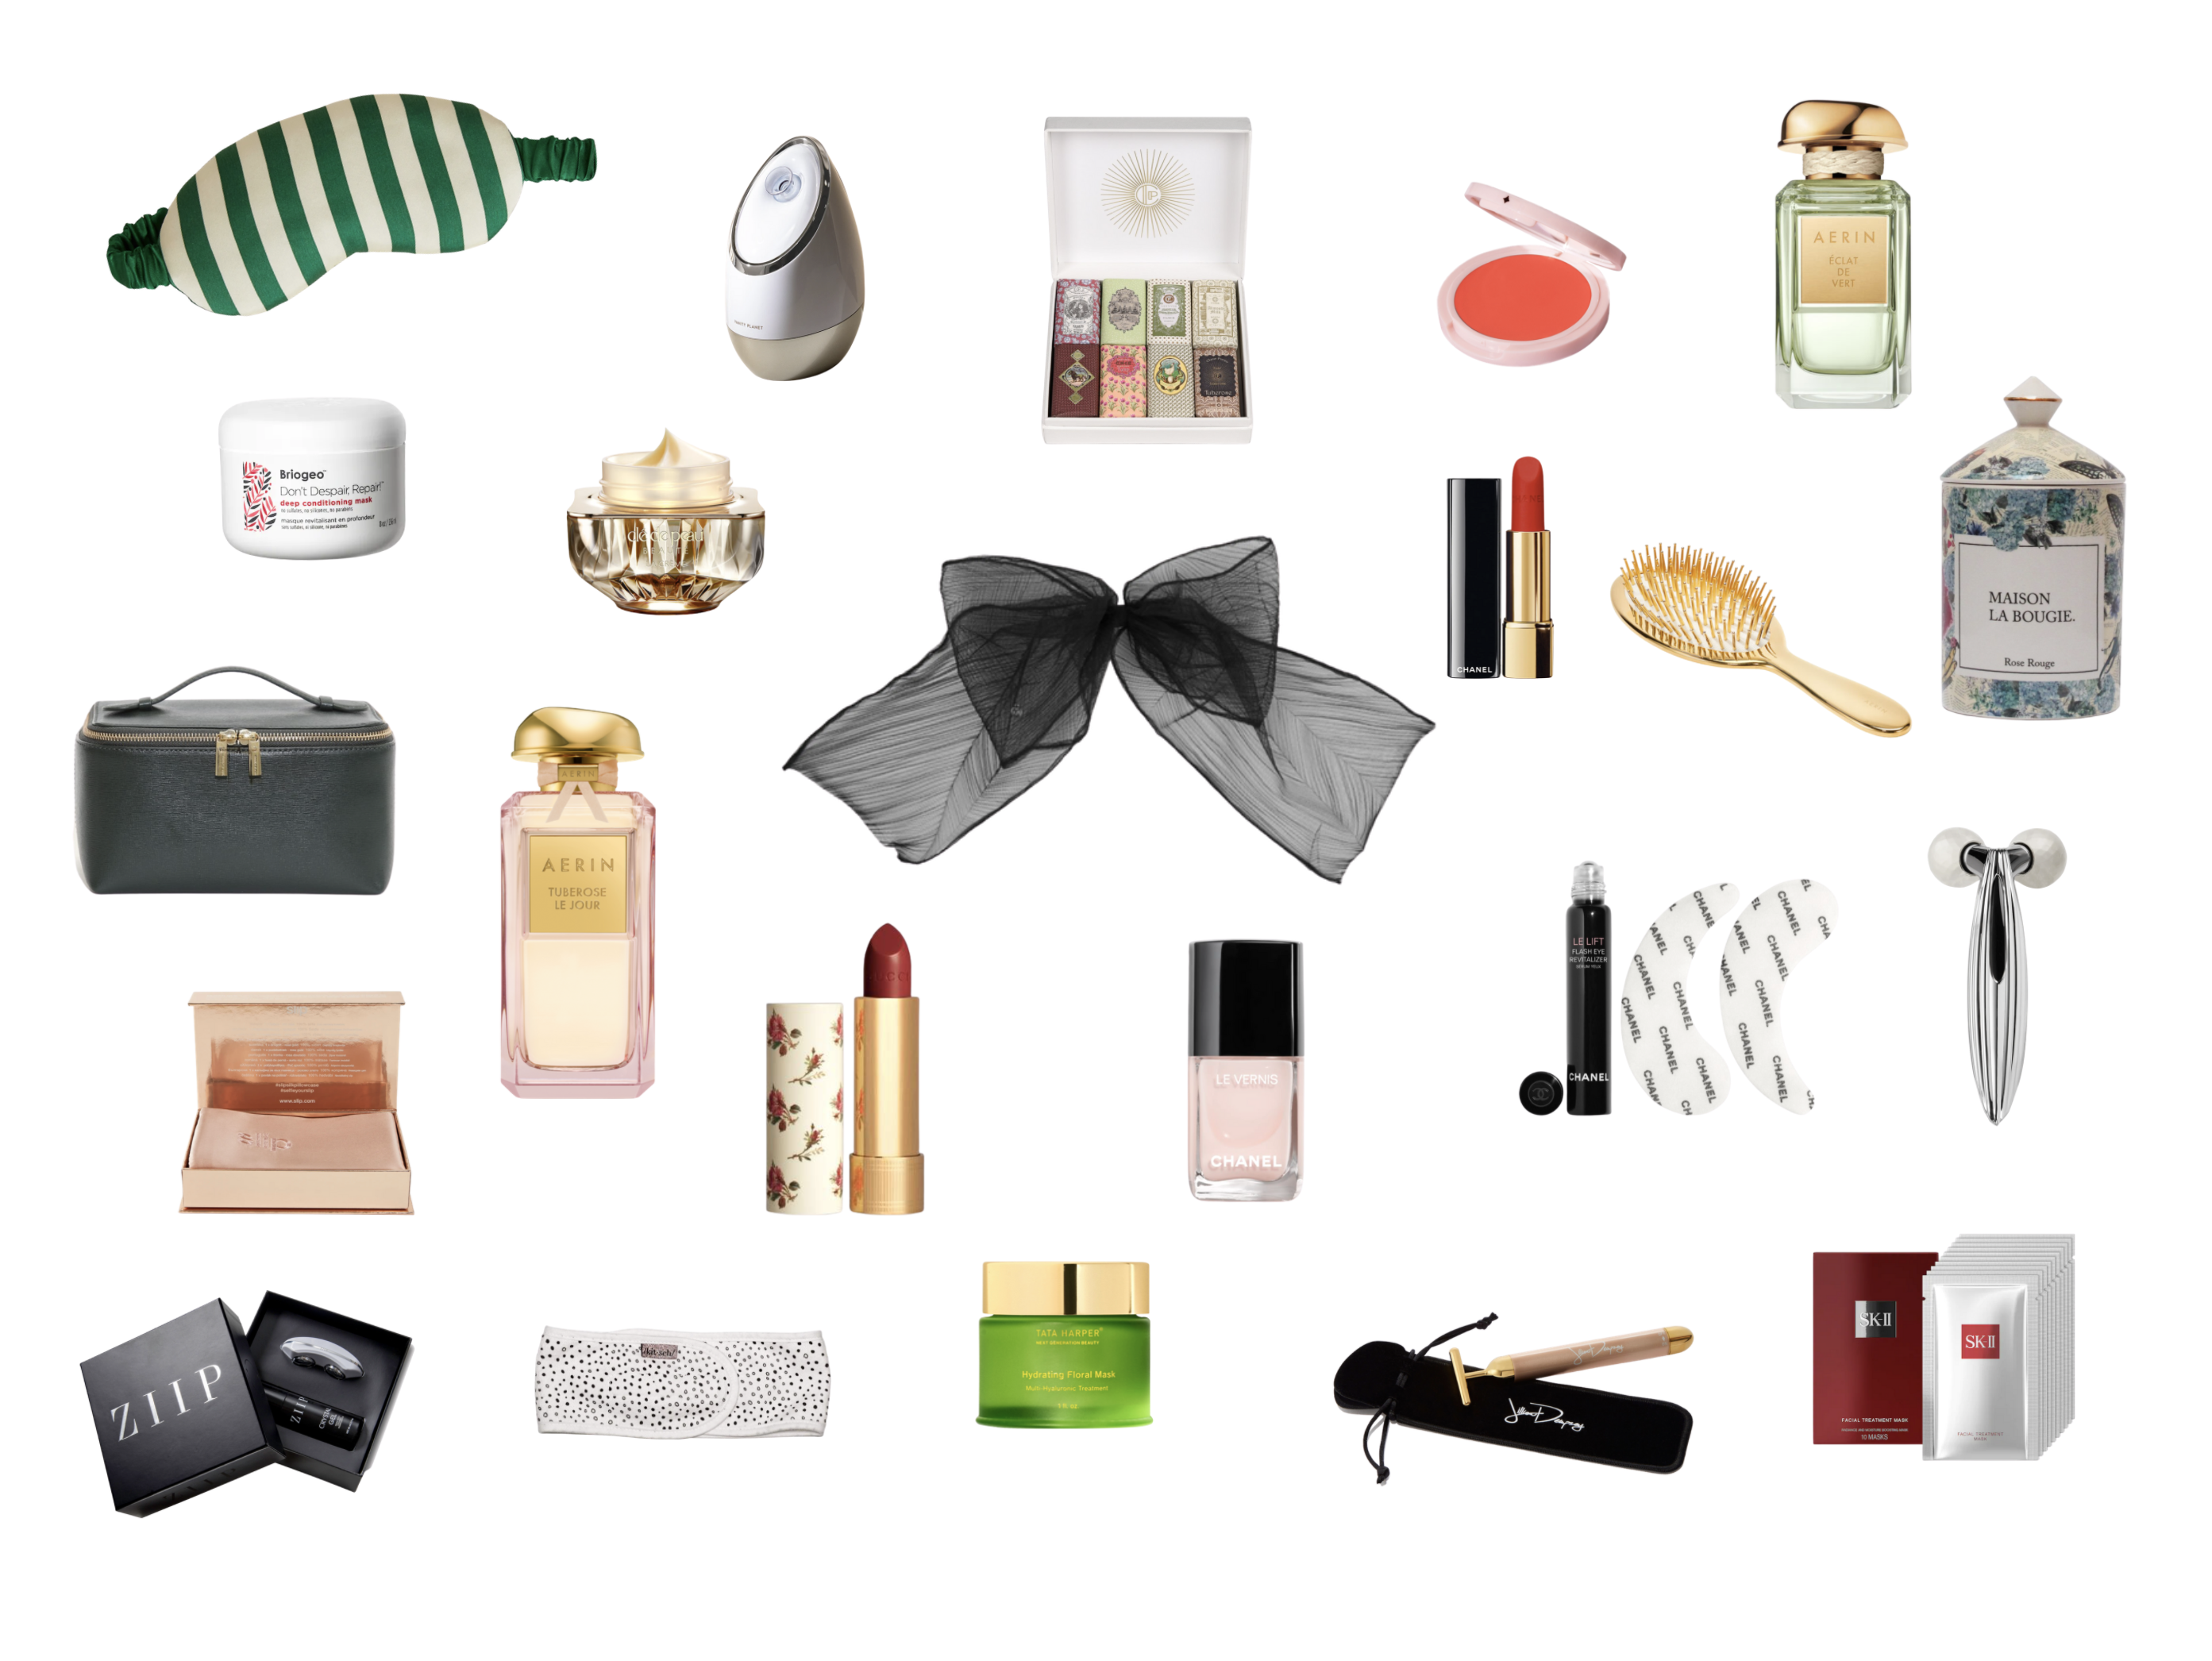 Stephanie Hill features a Gift Guide for the Beauty Lover on The Style Bungalow